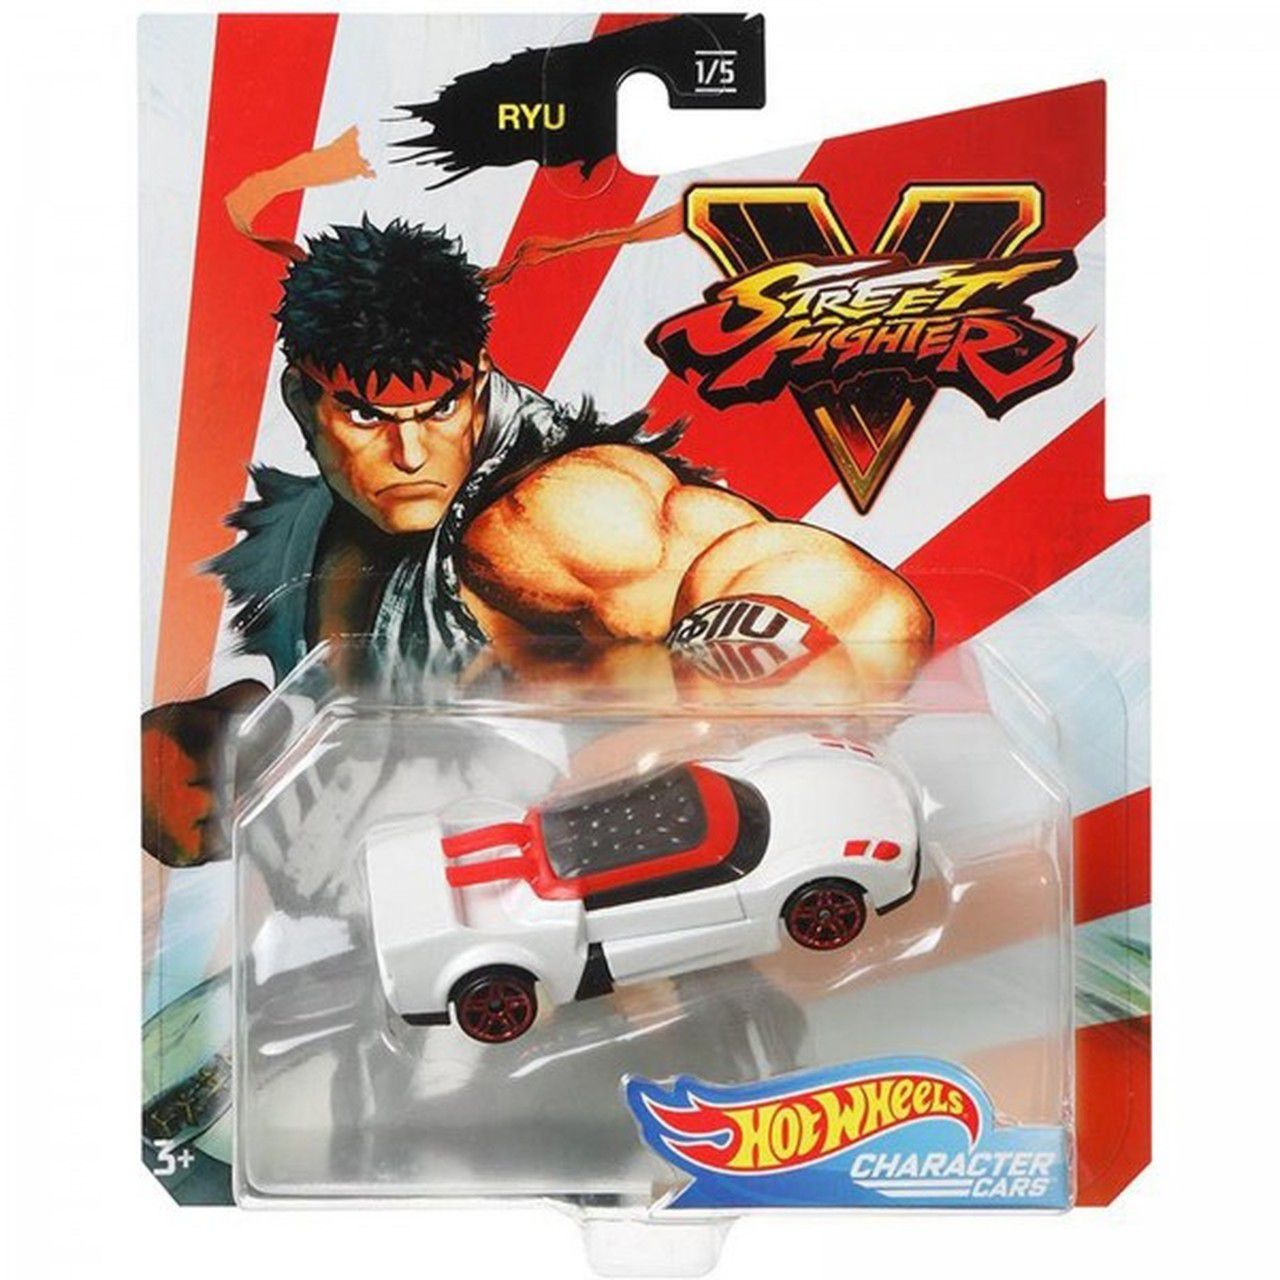 Carrinho Ryu: Street Fighter V - Hot Wheels